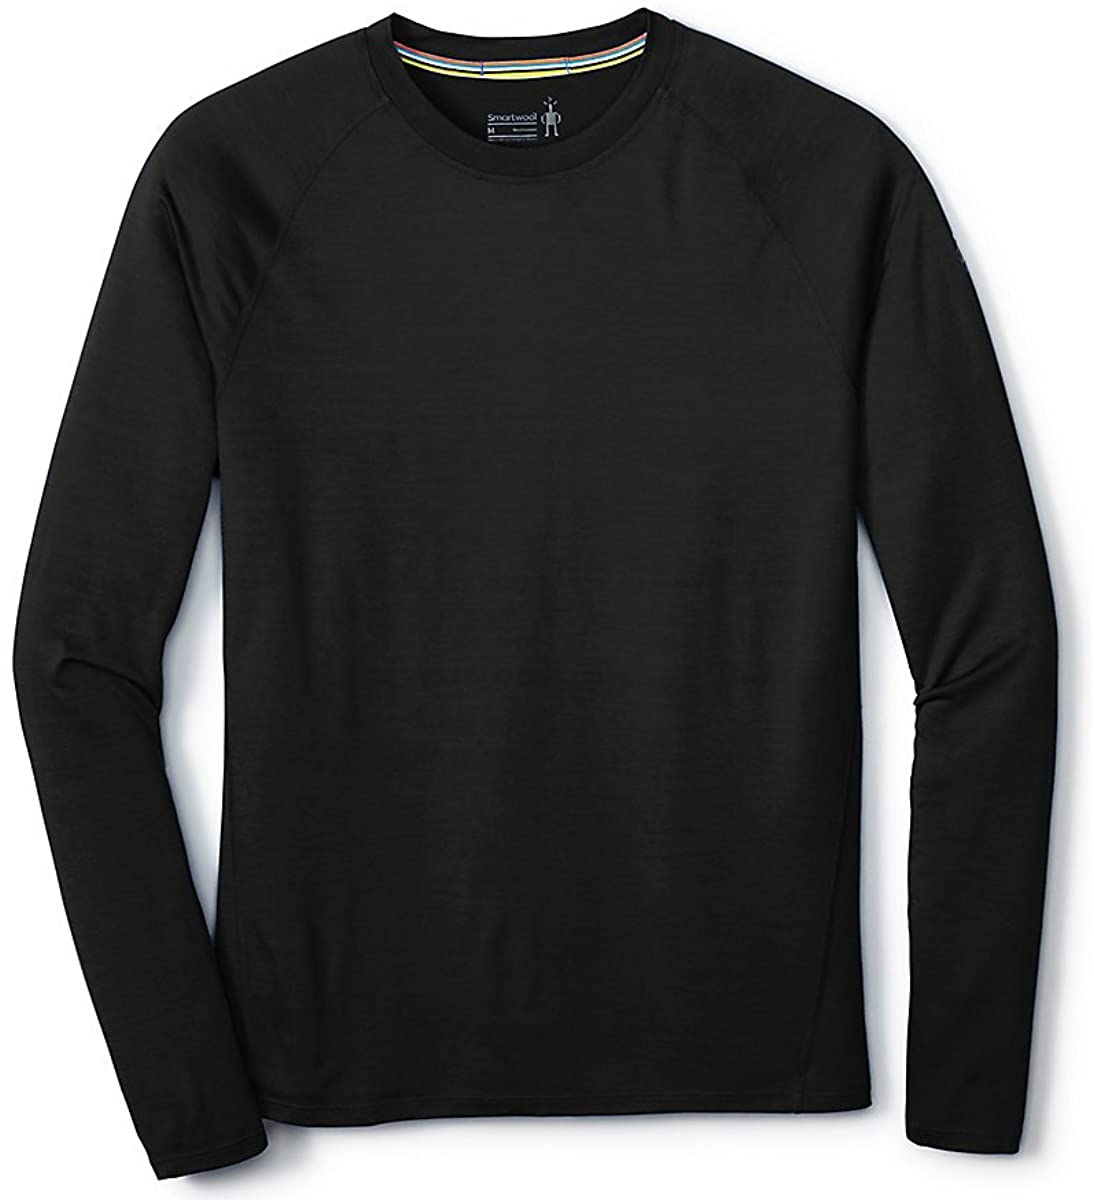 Men's Smartwool Merino 150 Base Layer Long Sleeve in Black from the side view